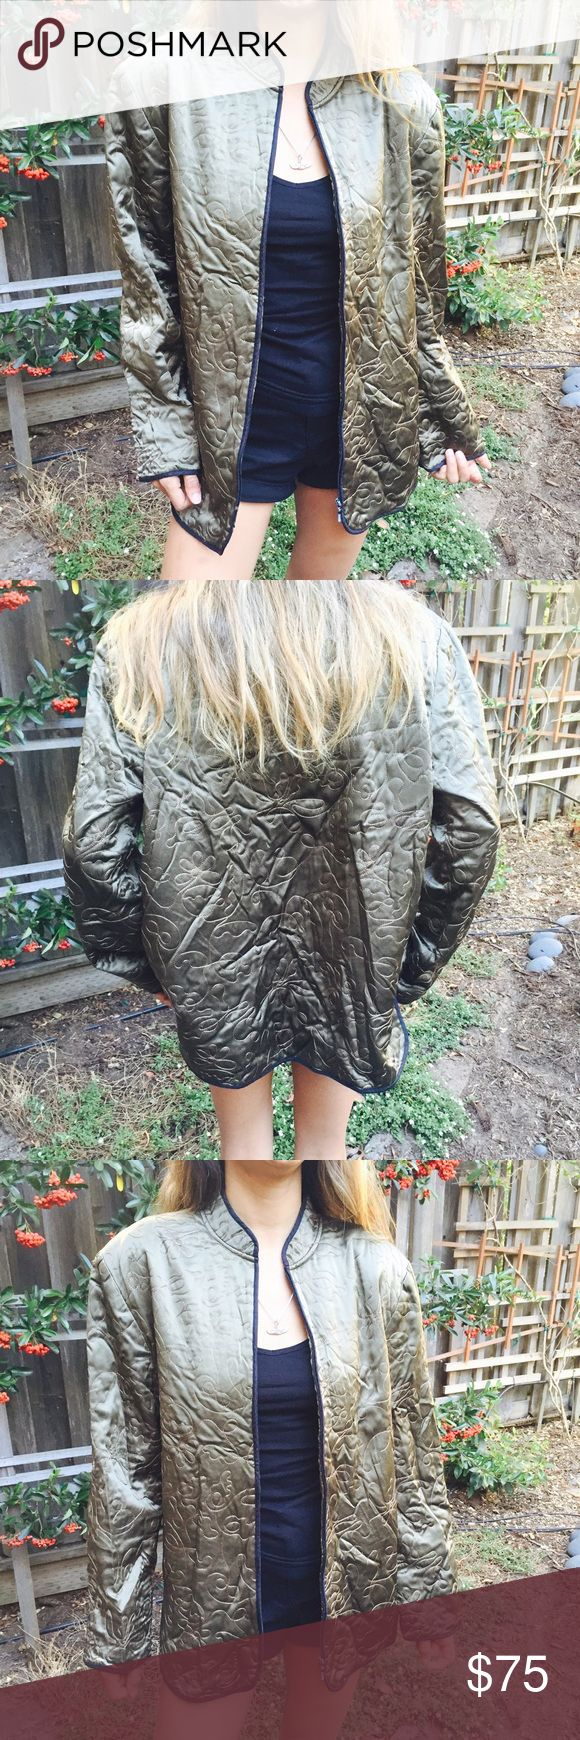 Vintage Silk Jacket 100% silk, NWOT. Tag says size 1 - would fit S/M best. Super comfy, perfect for layering and festivals! Model is XS/5'2 for reference. No trades, please ask all questions before purchasing 🙈💕 Chico's Jackets & Coats